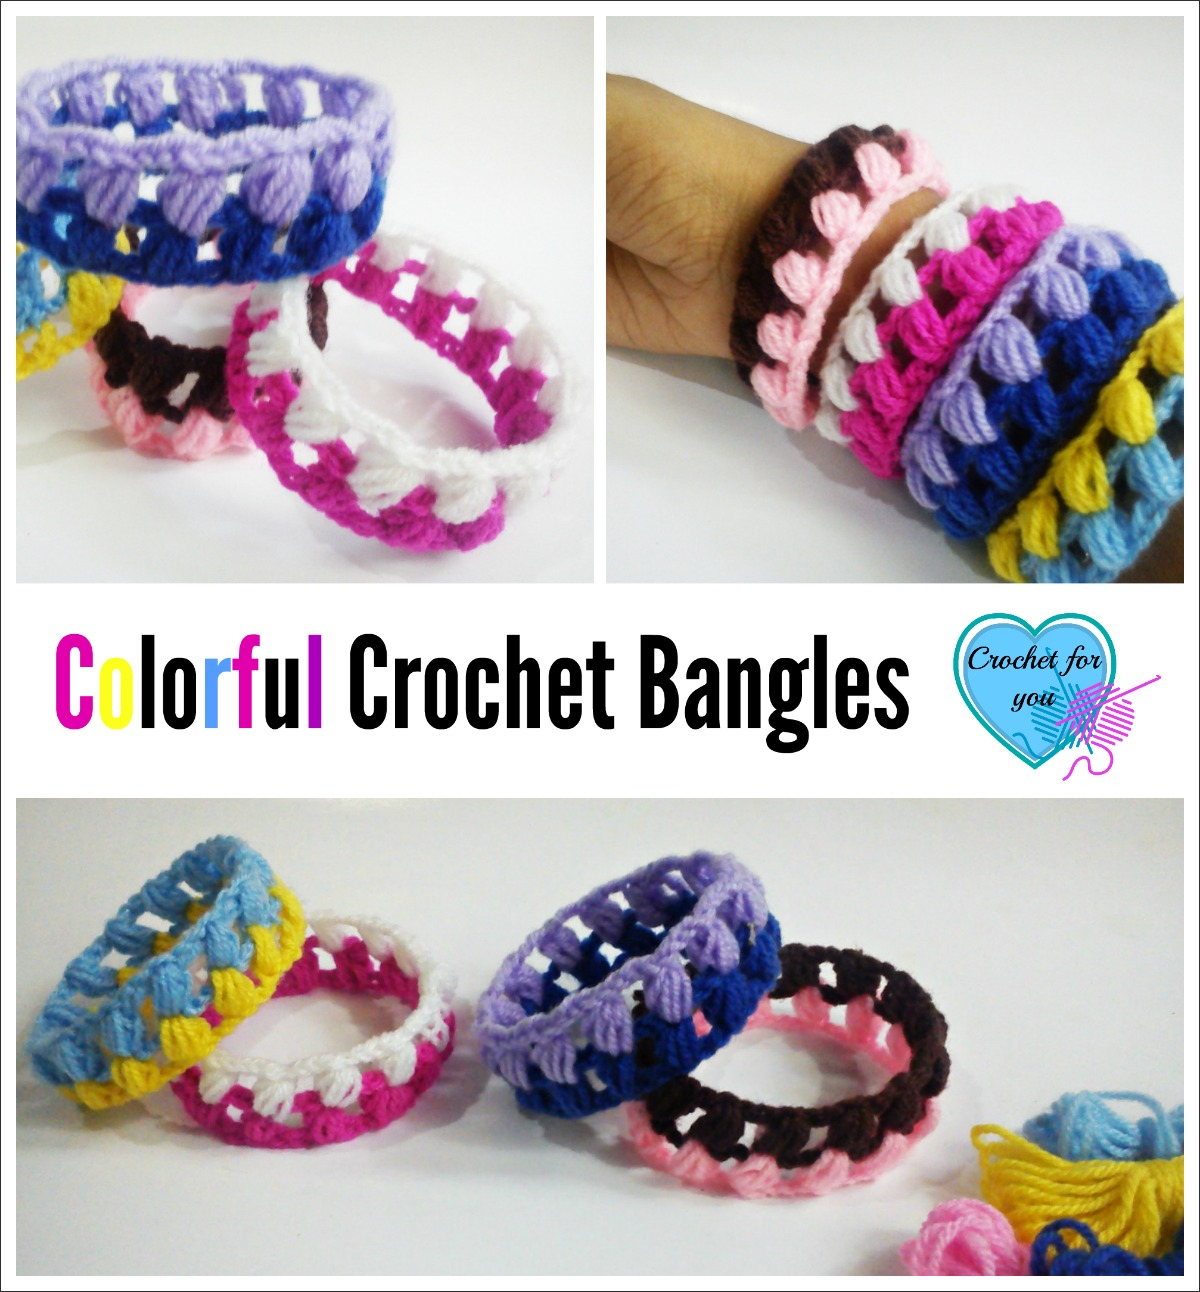 Crochet Colorful Crochet Bangles - free pattern